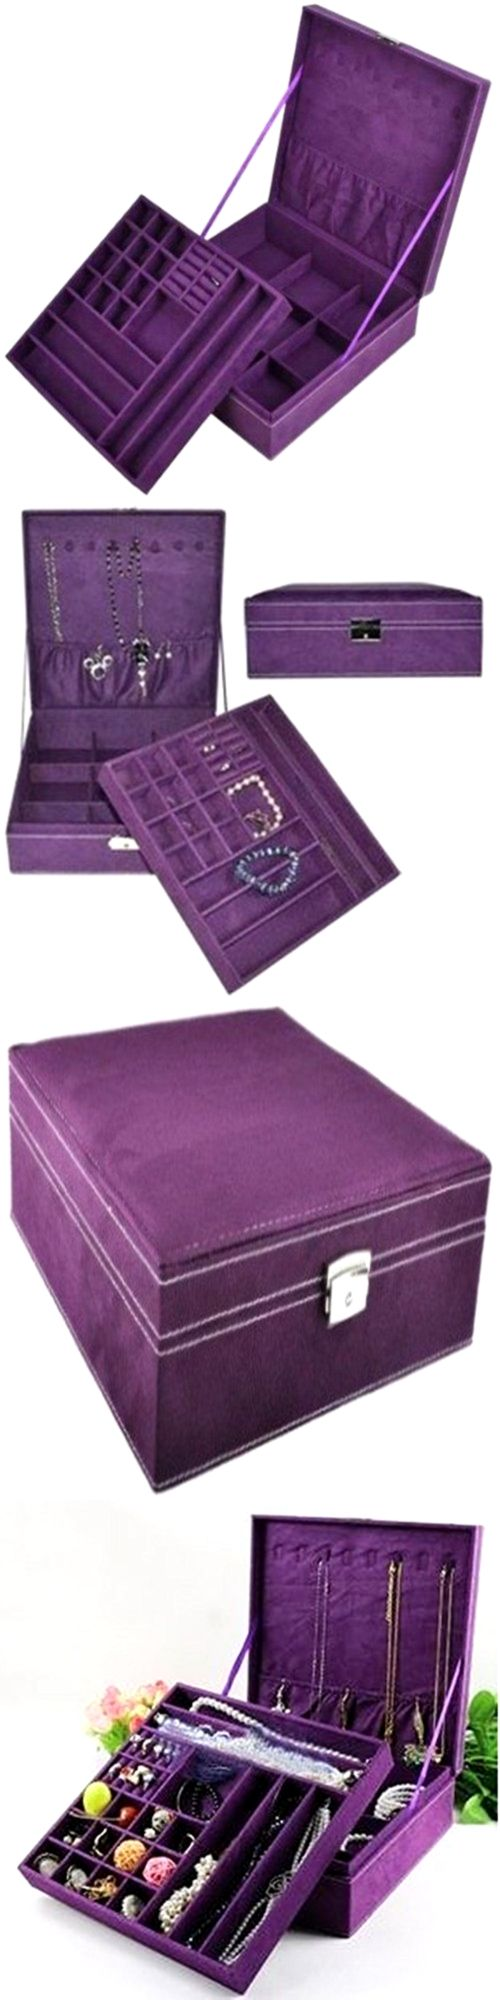 Multi-Purpose 168165: Jewelry Box Purple Storage Cabinet Organizer Necklace Chest Display Case Armoire BUY IT NOW ONLY: $50.46